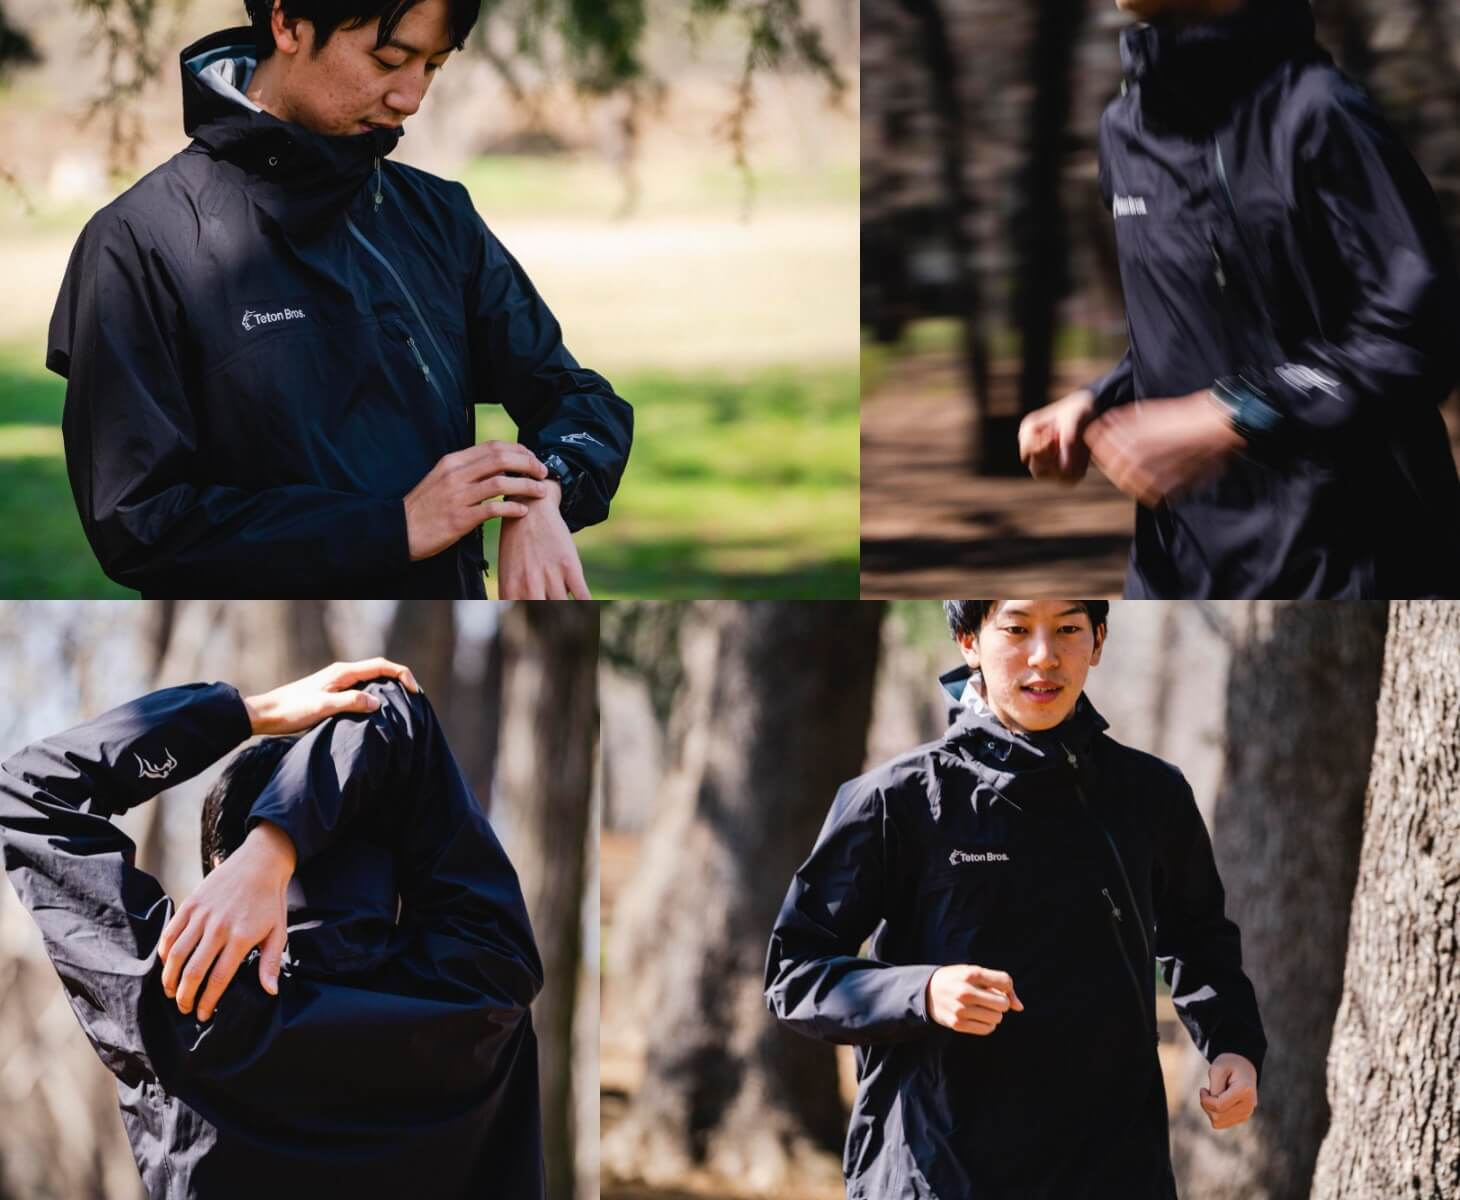 Tsurugi Lite Jacket For Running